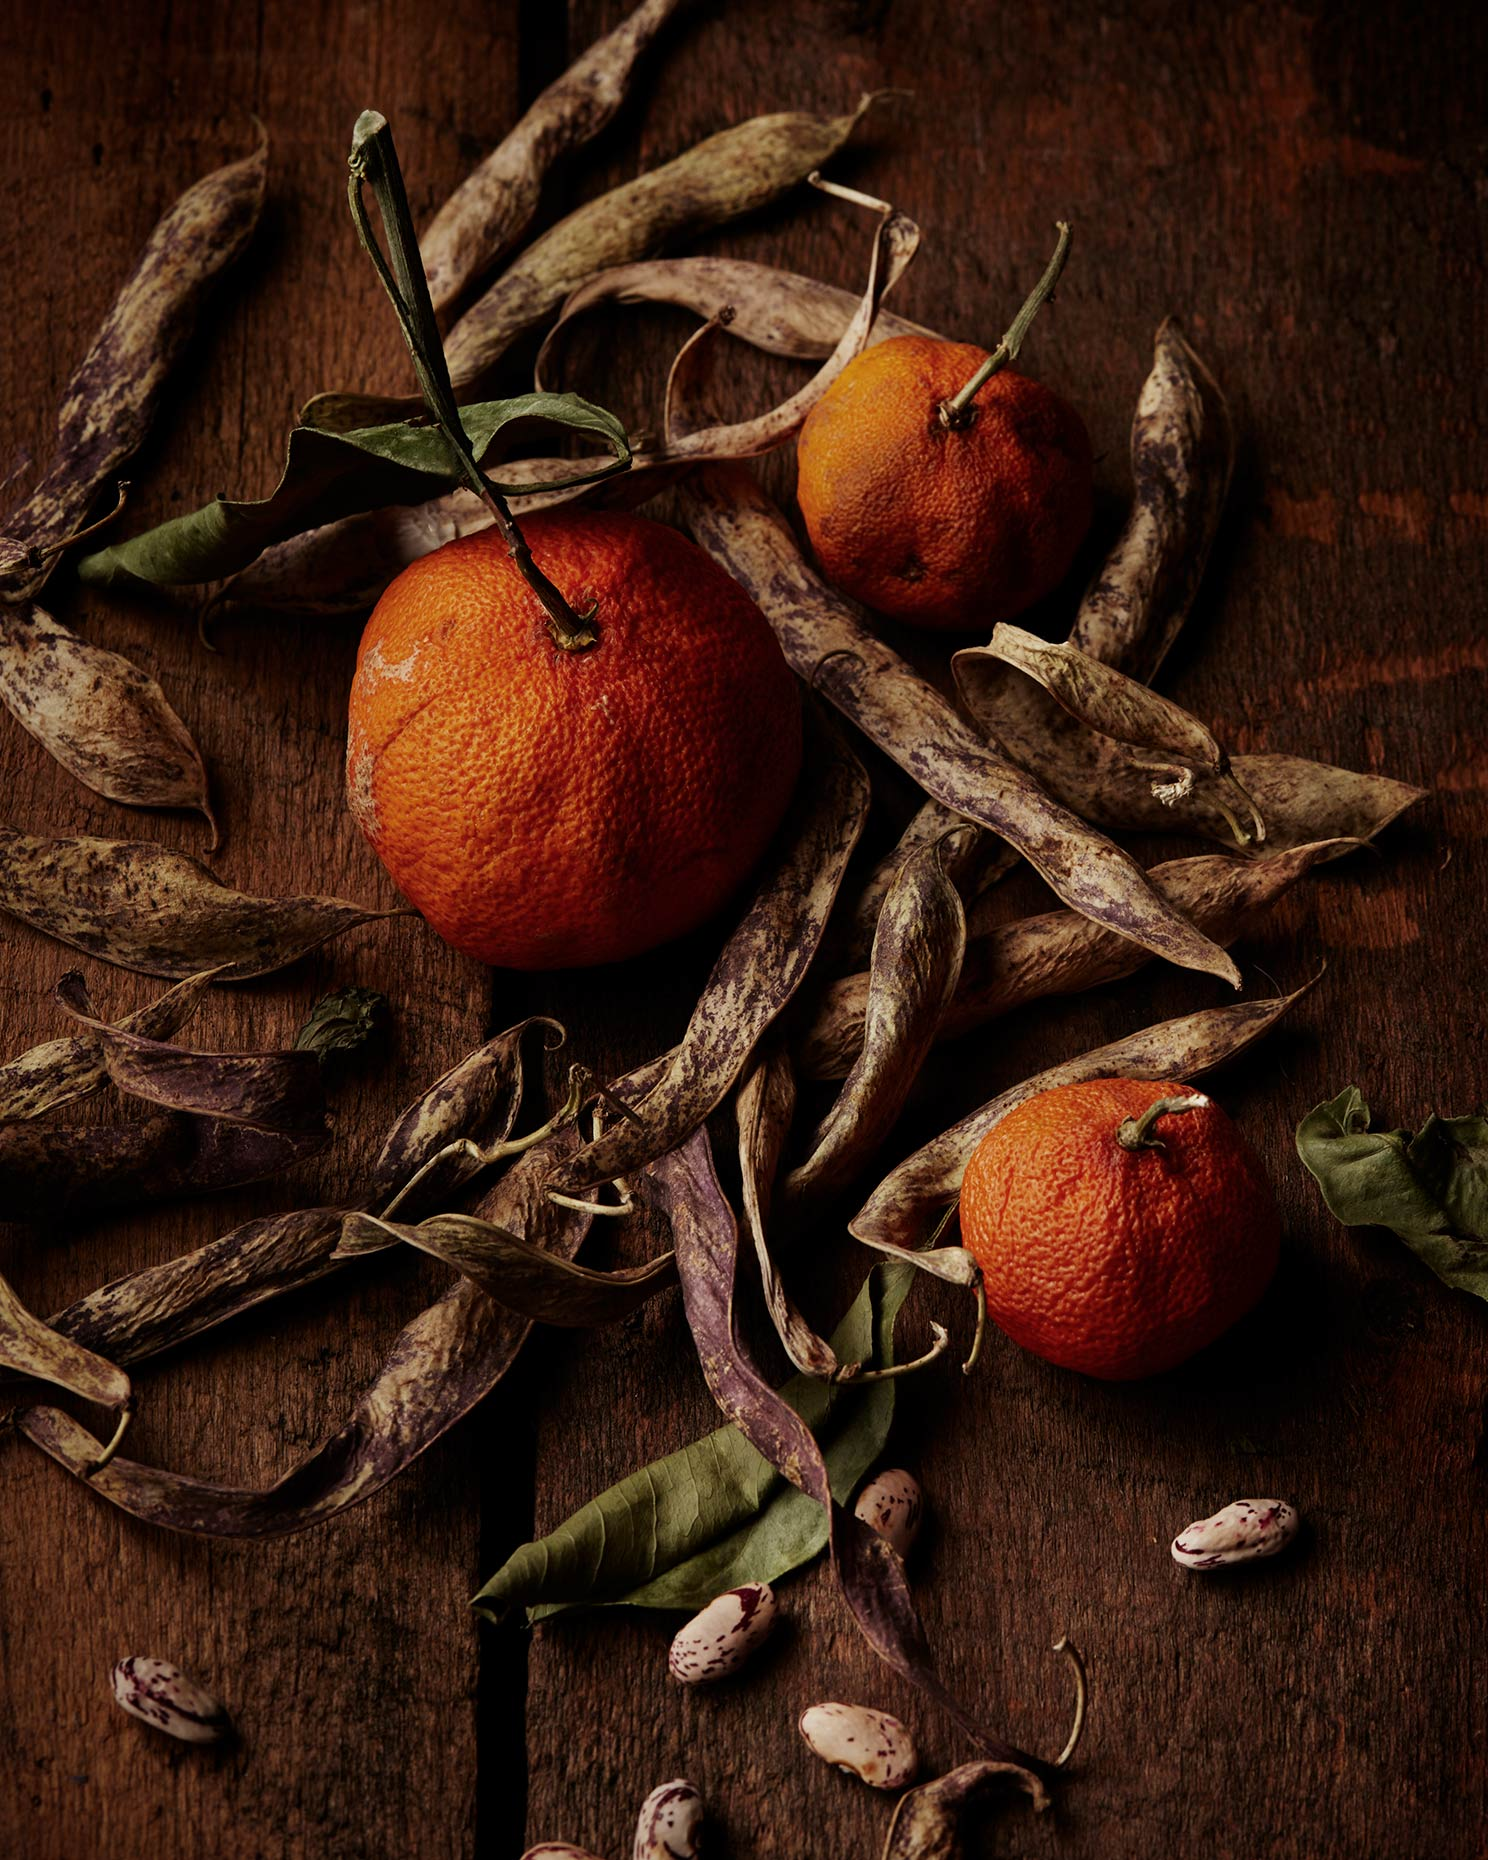 still life photograph dried oranges and beans on an old rustic background